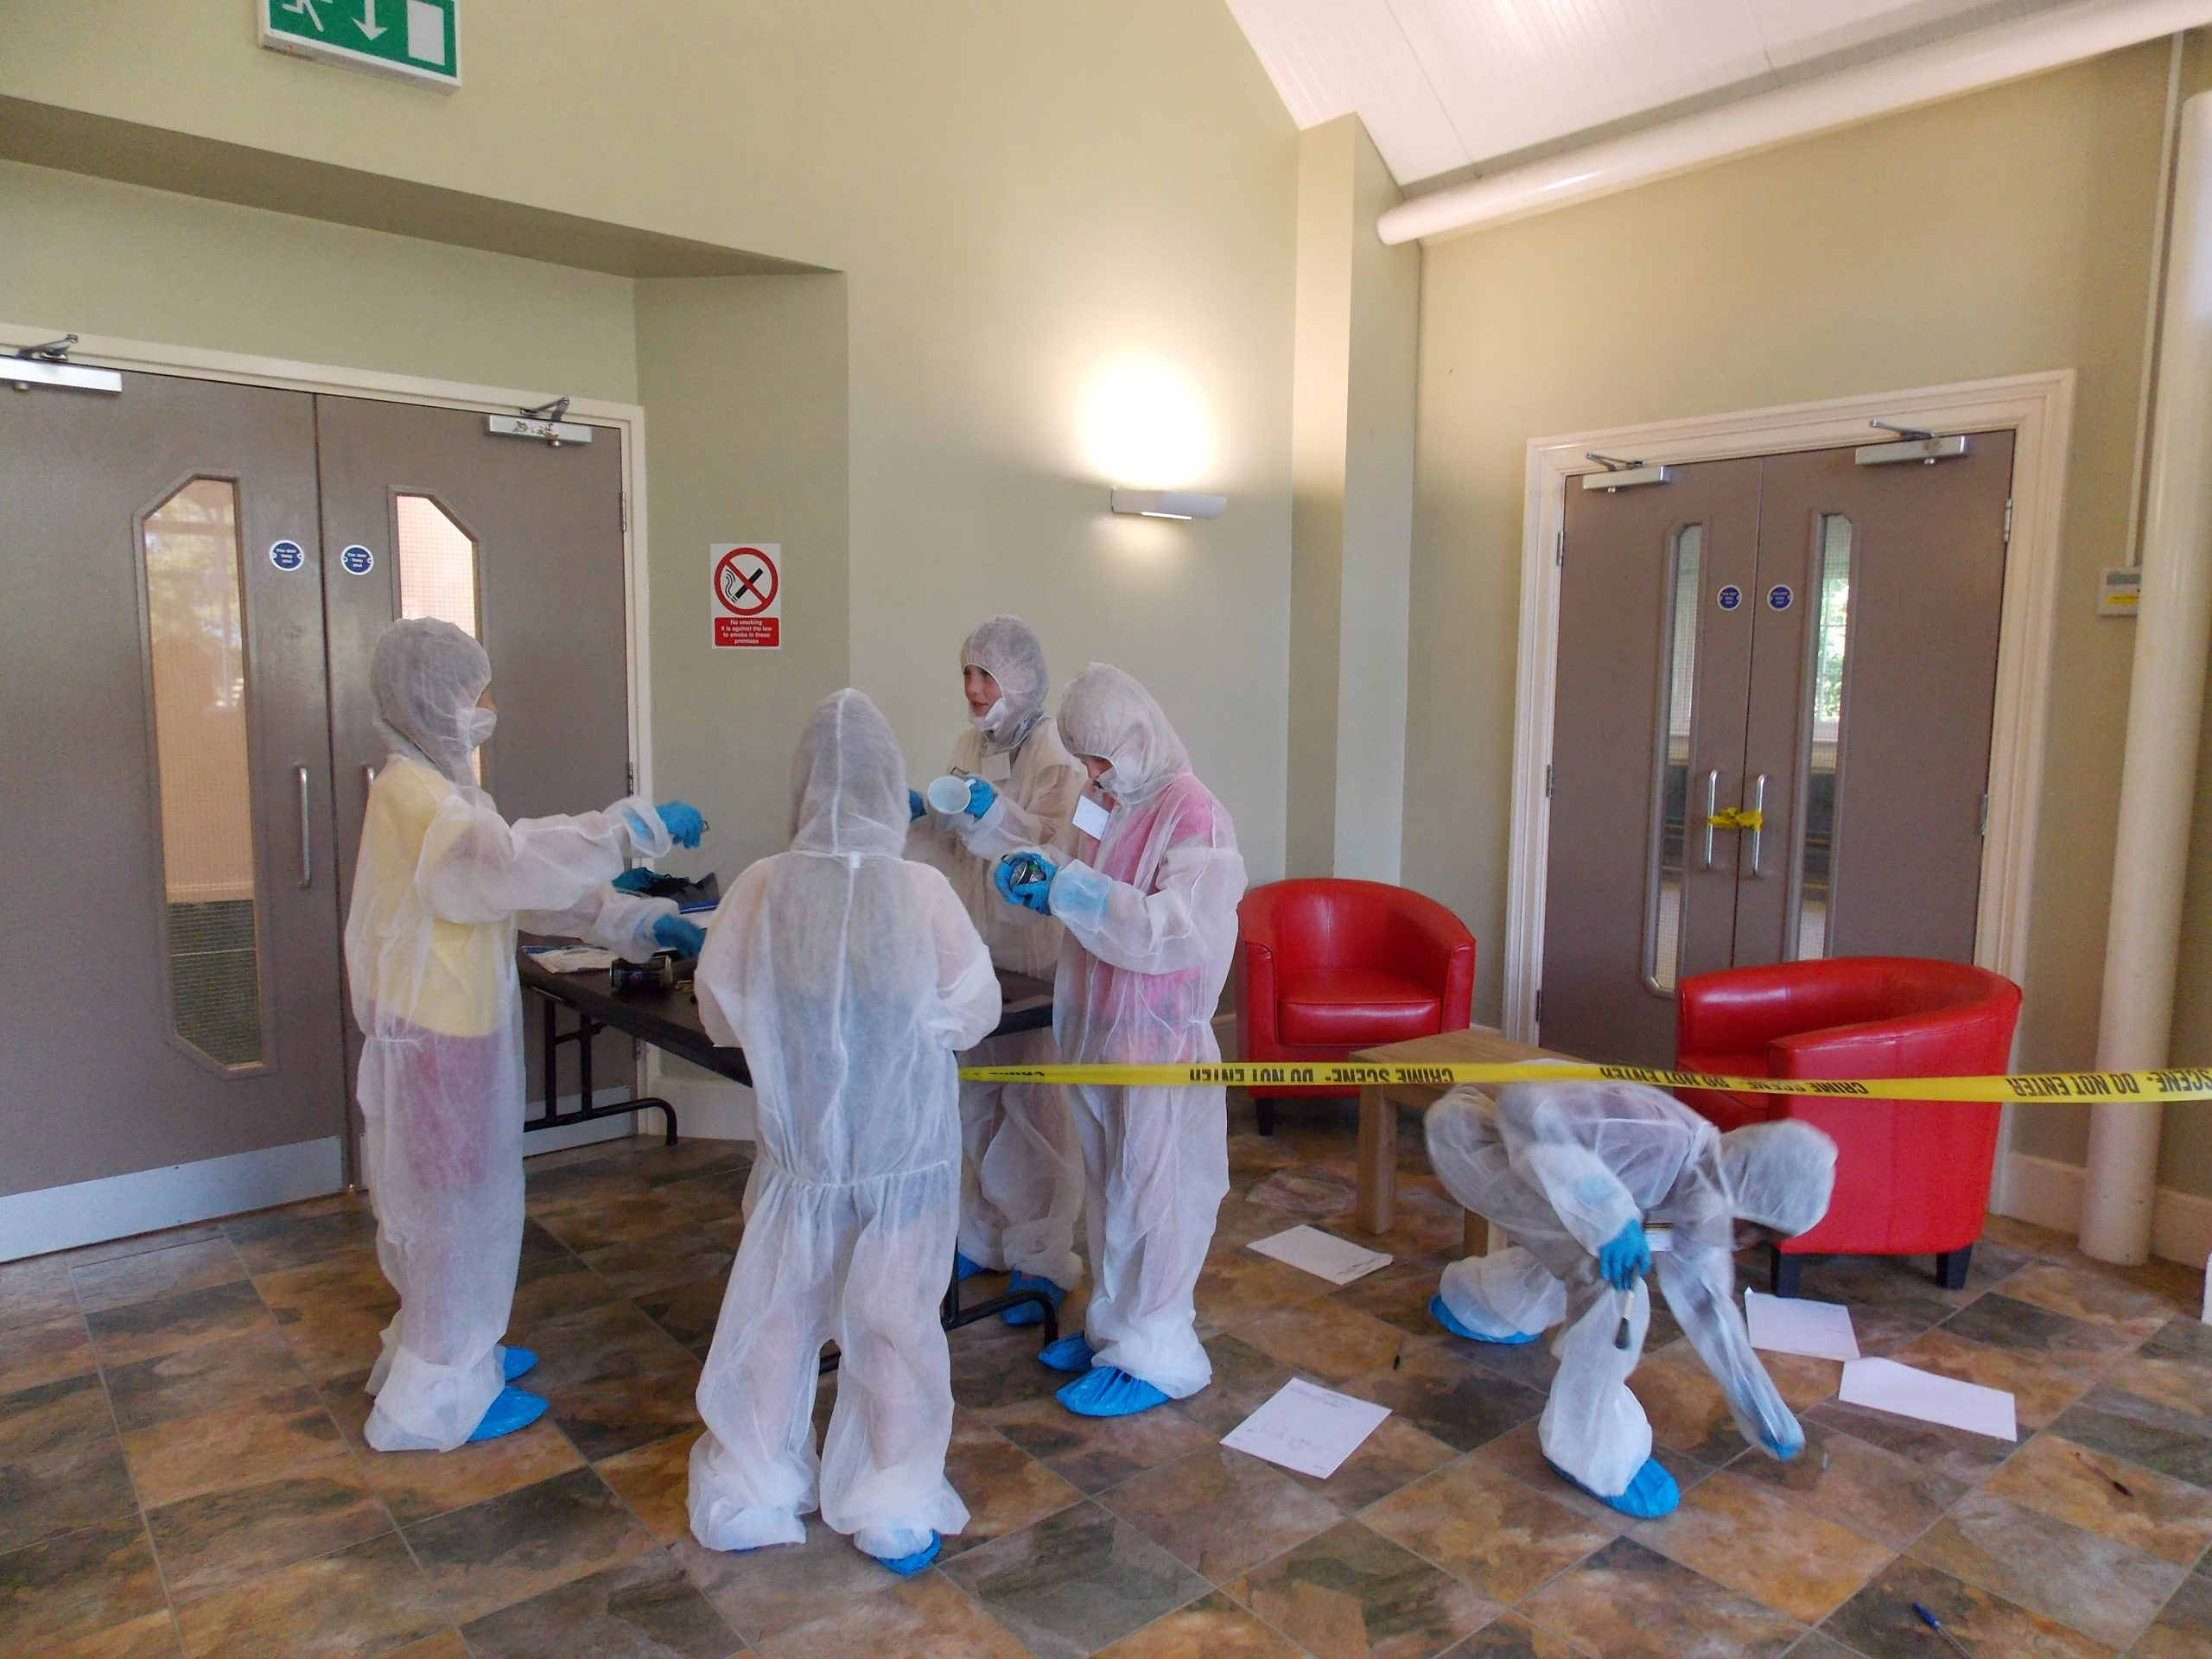 CSI Training and Events - CSI Educational Workshops - Children examining a staged crime scene